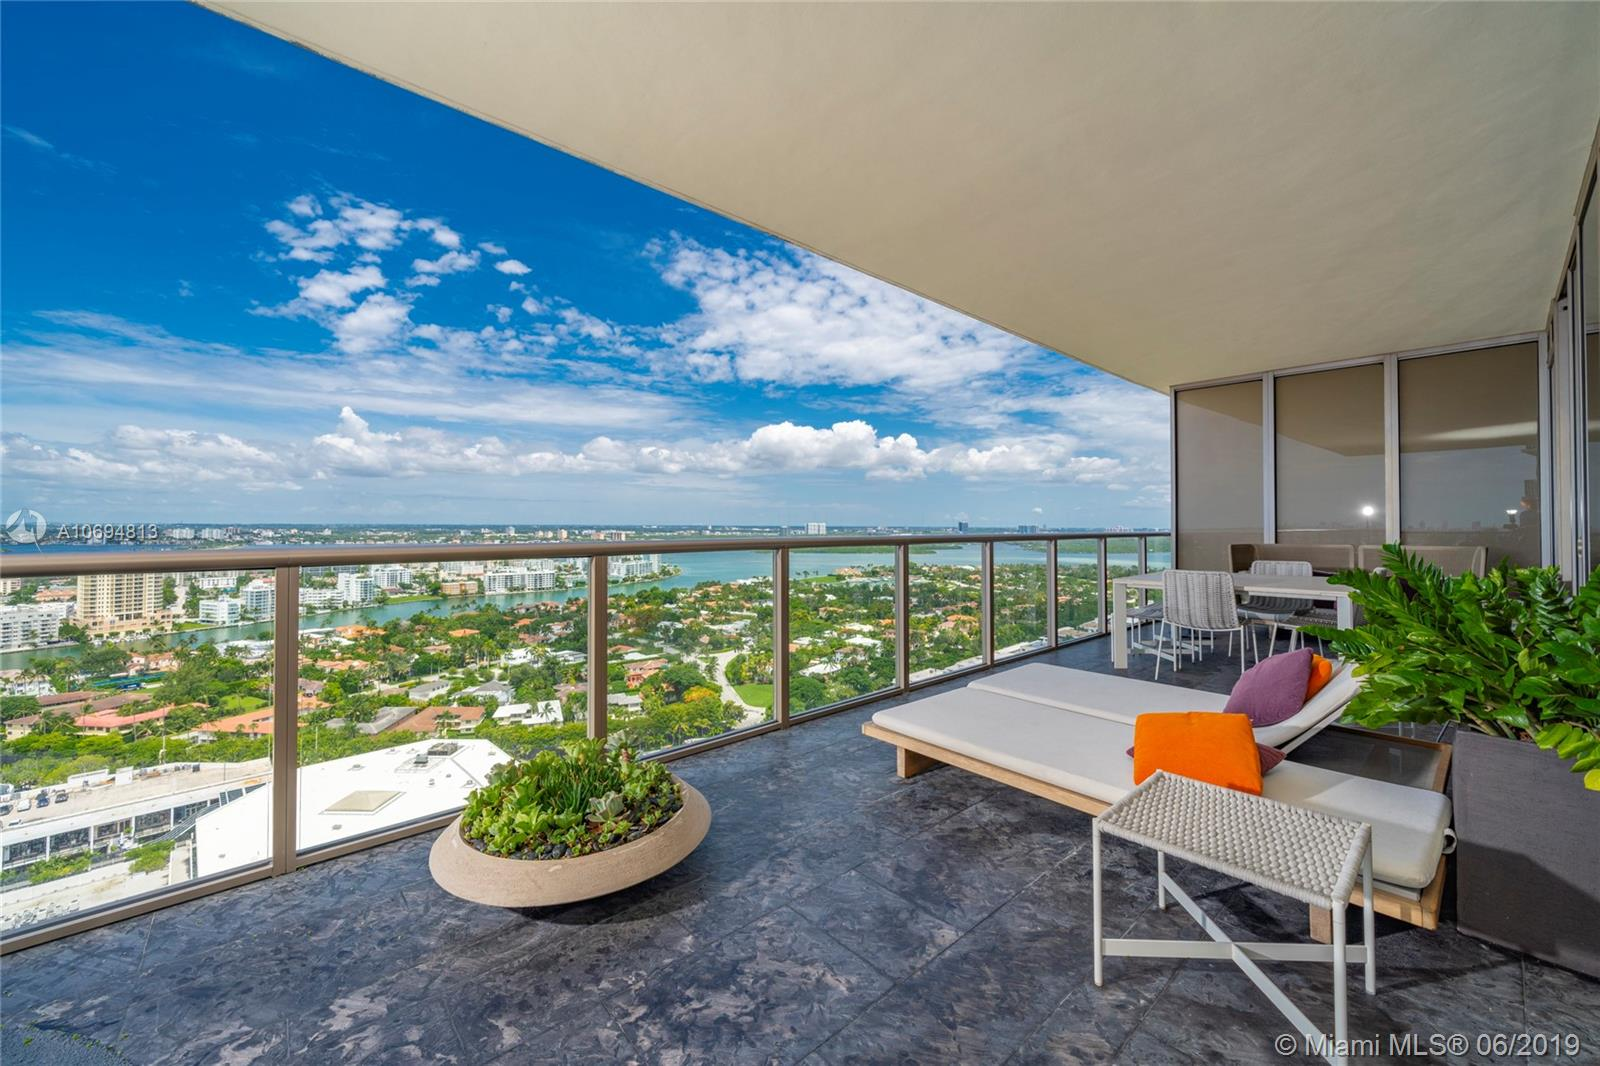 9705 Collins Ave #2505N, Bal Harbour FL 33154